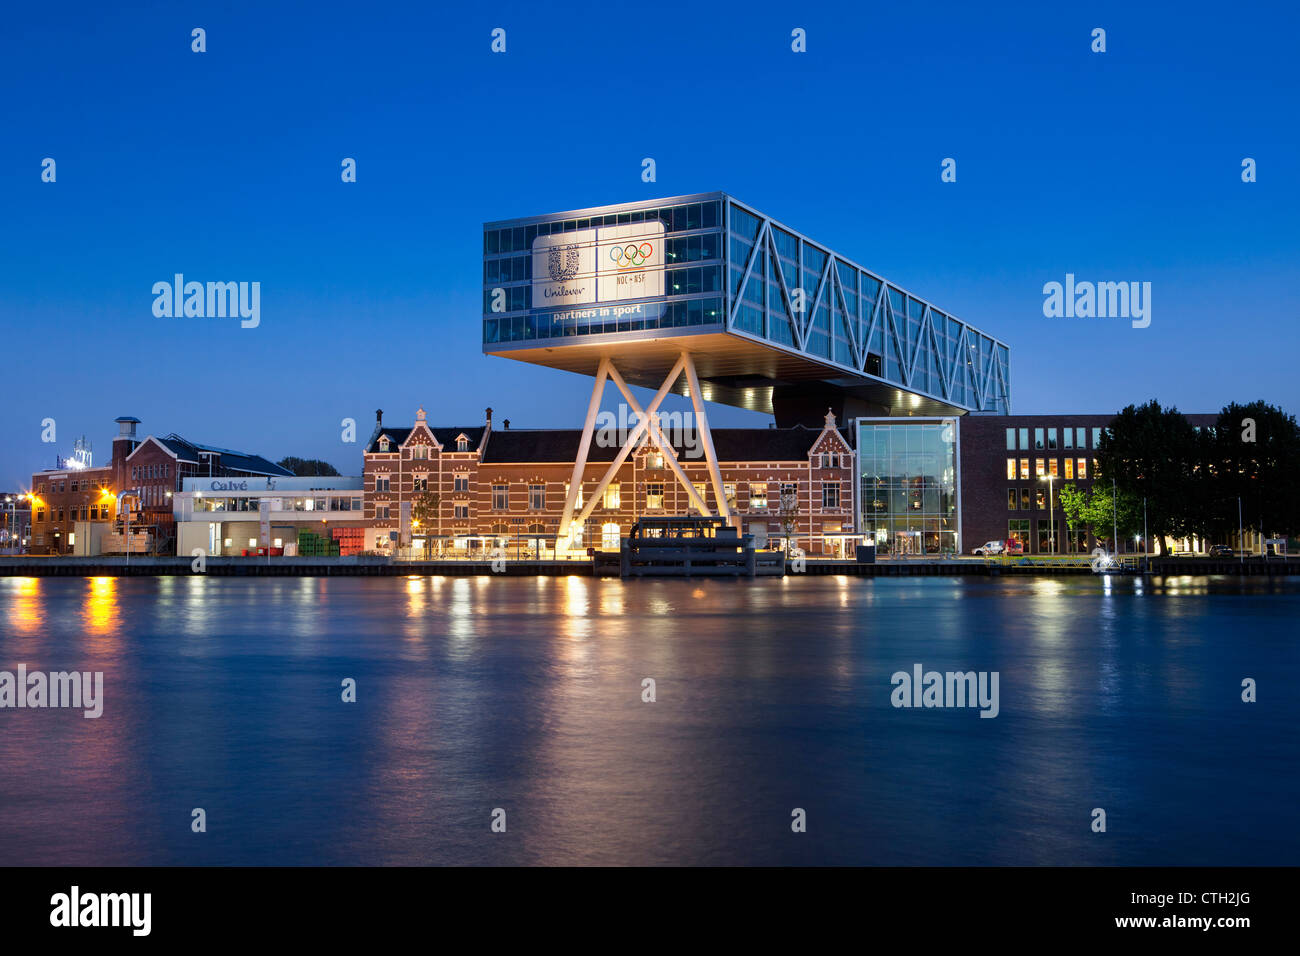 The Netherlands, Rotterdam, Headquarters of Unilever Netherlands. Stock Photo